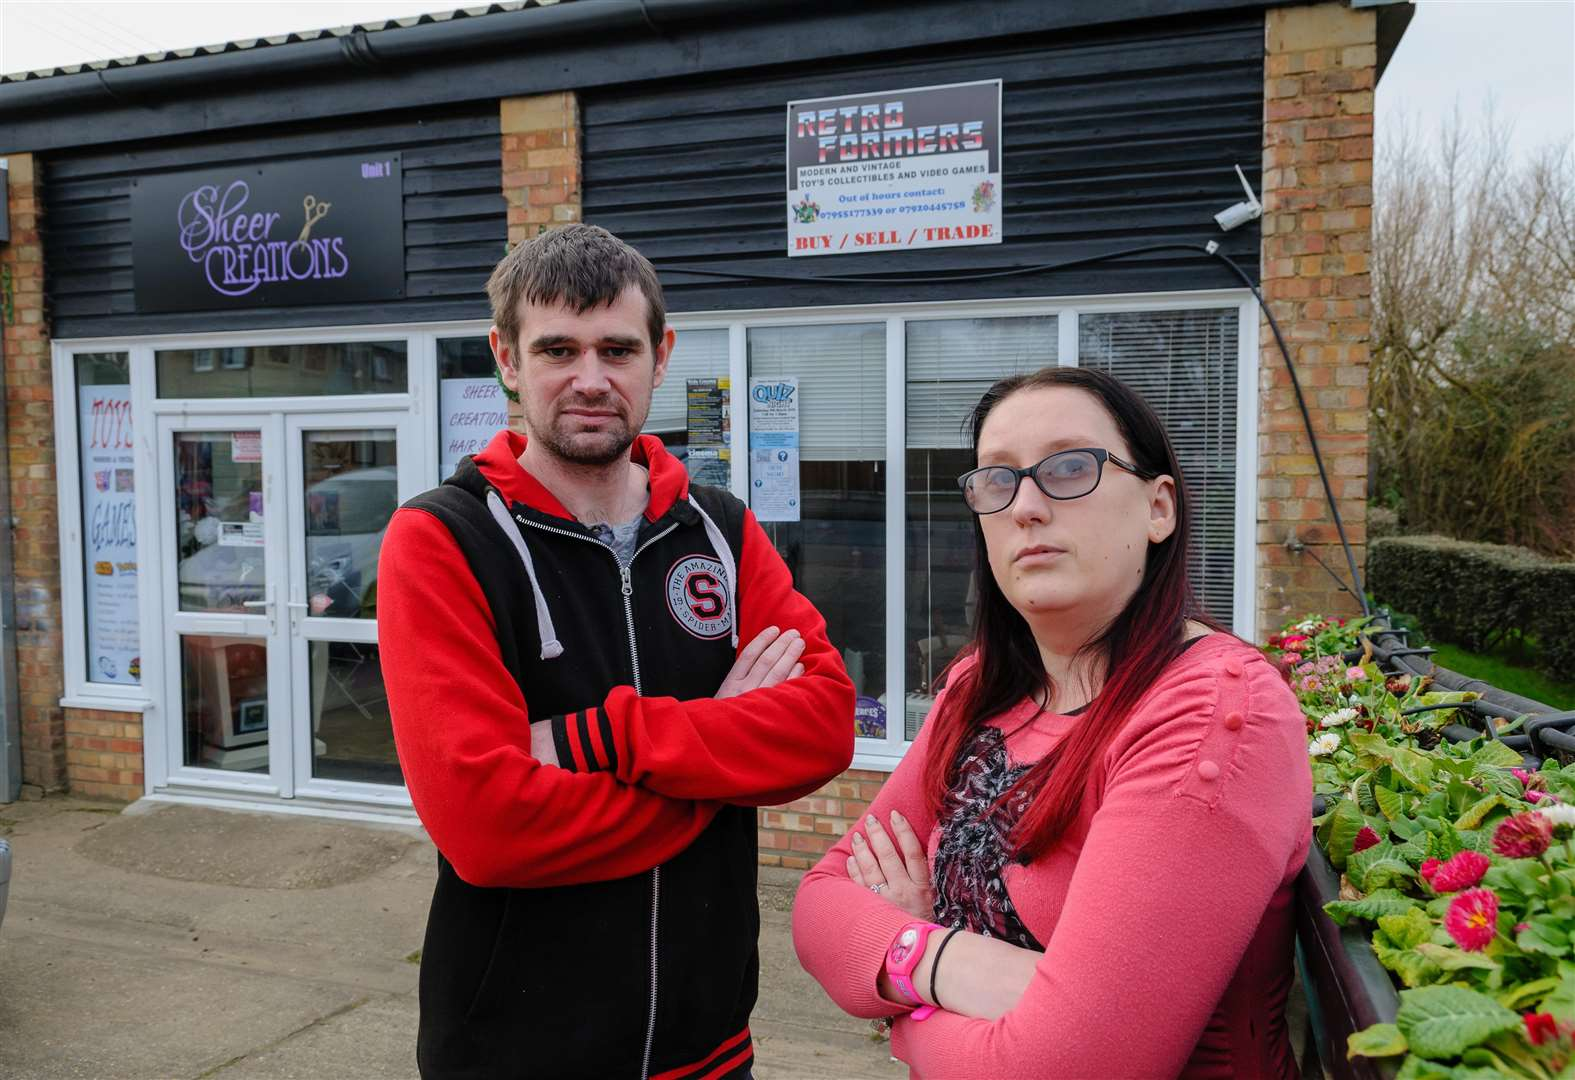 Halstead pair relieved at lucky escape after car collides with hair salon